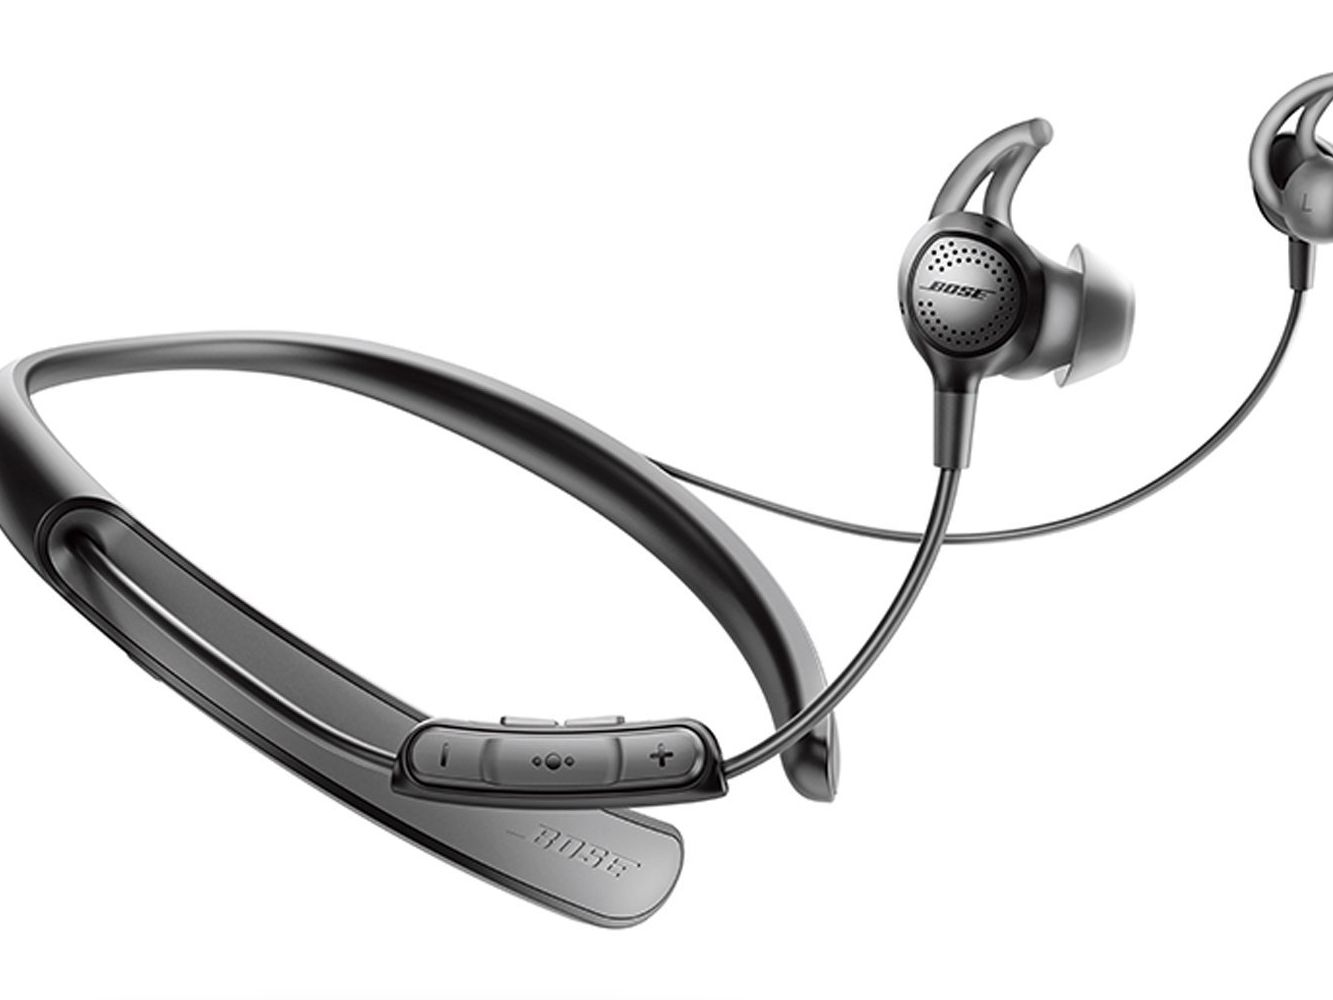 d2fa9901d49 The 11 Best Wireless Earbuds of 2019